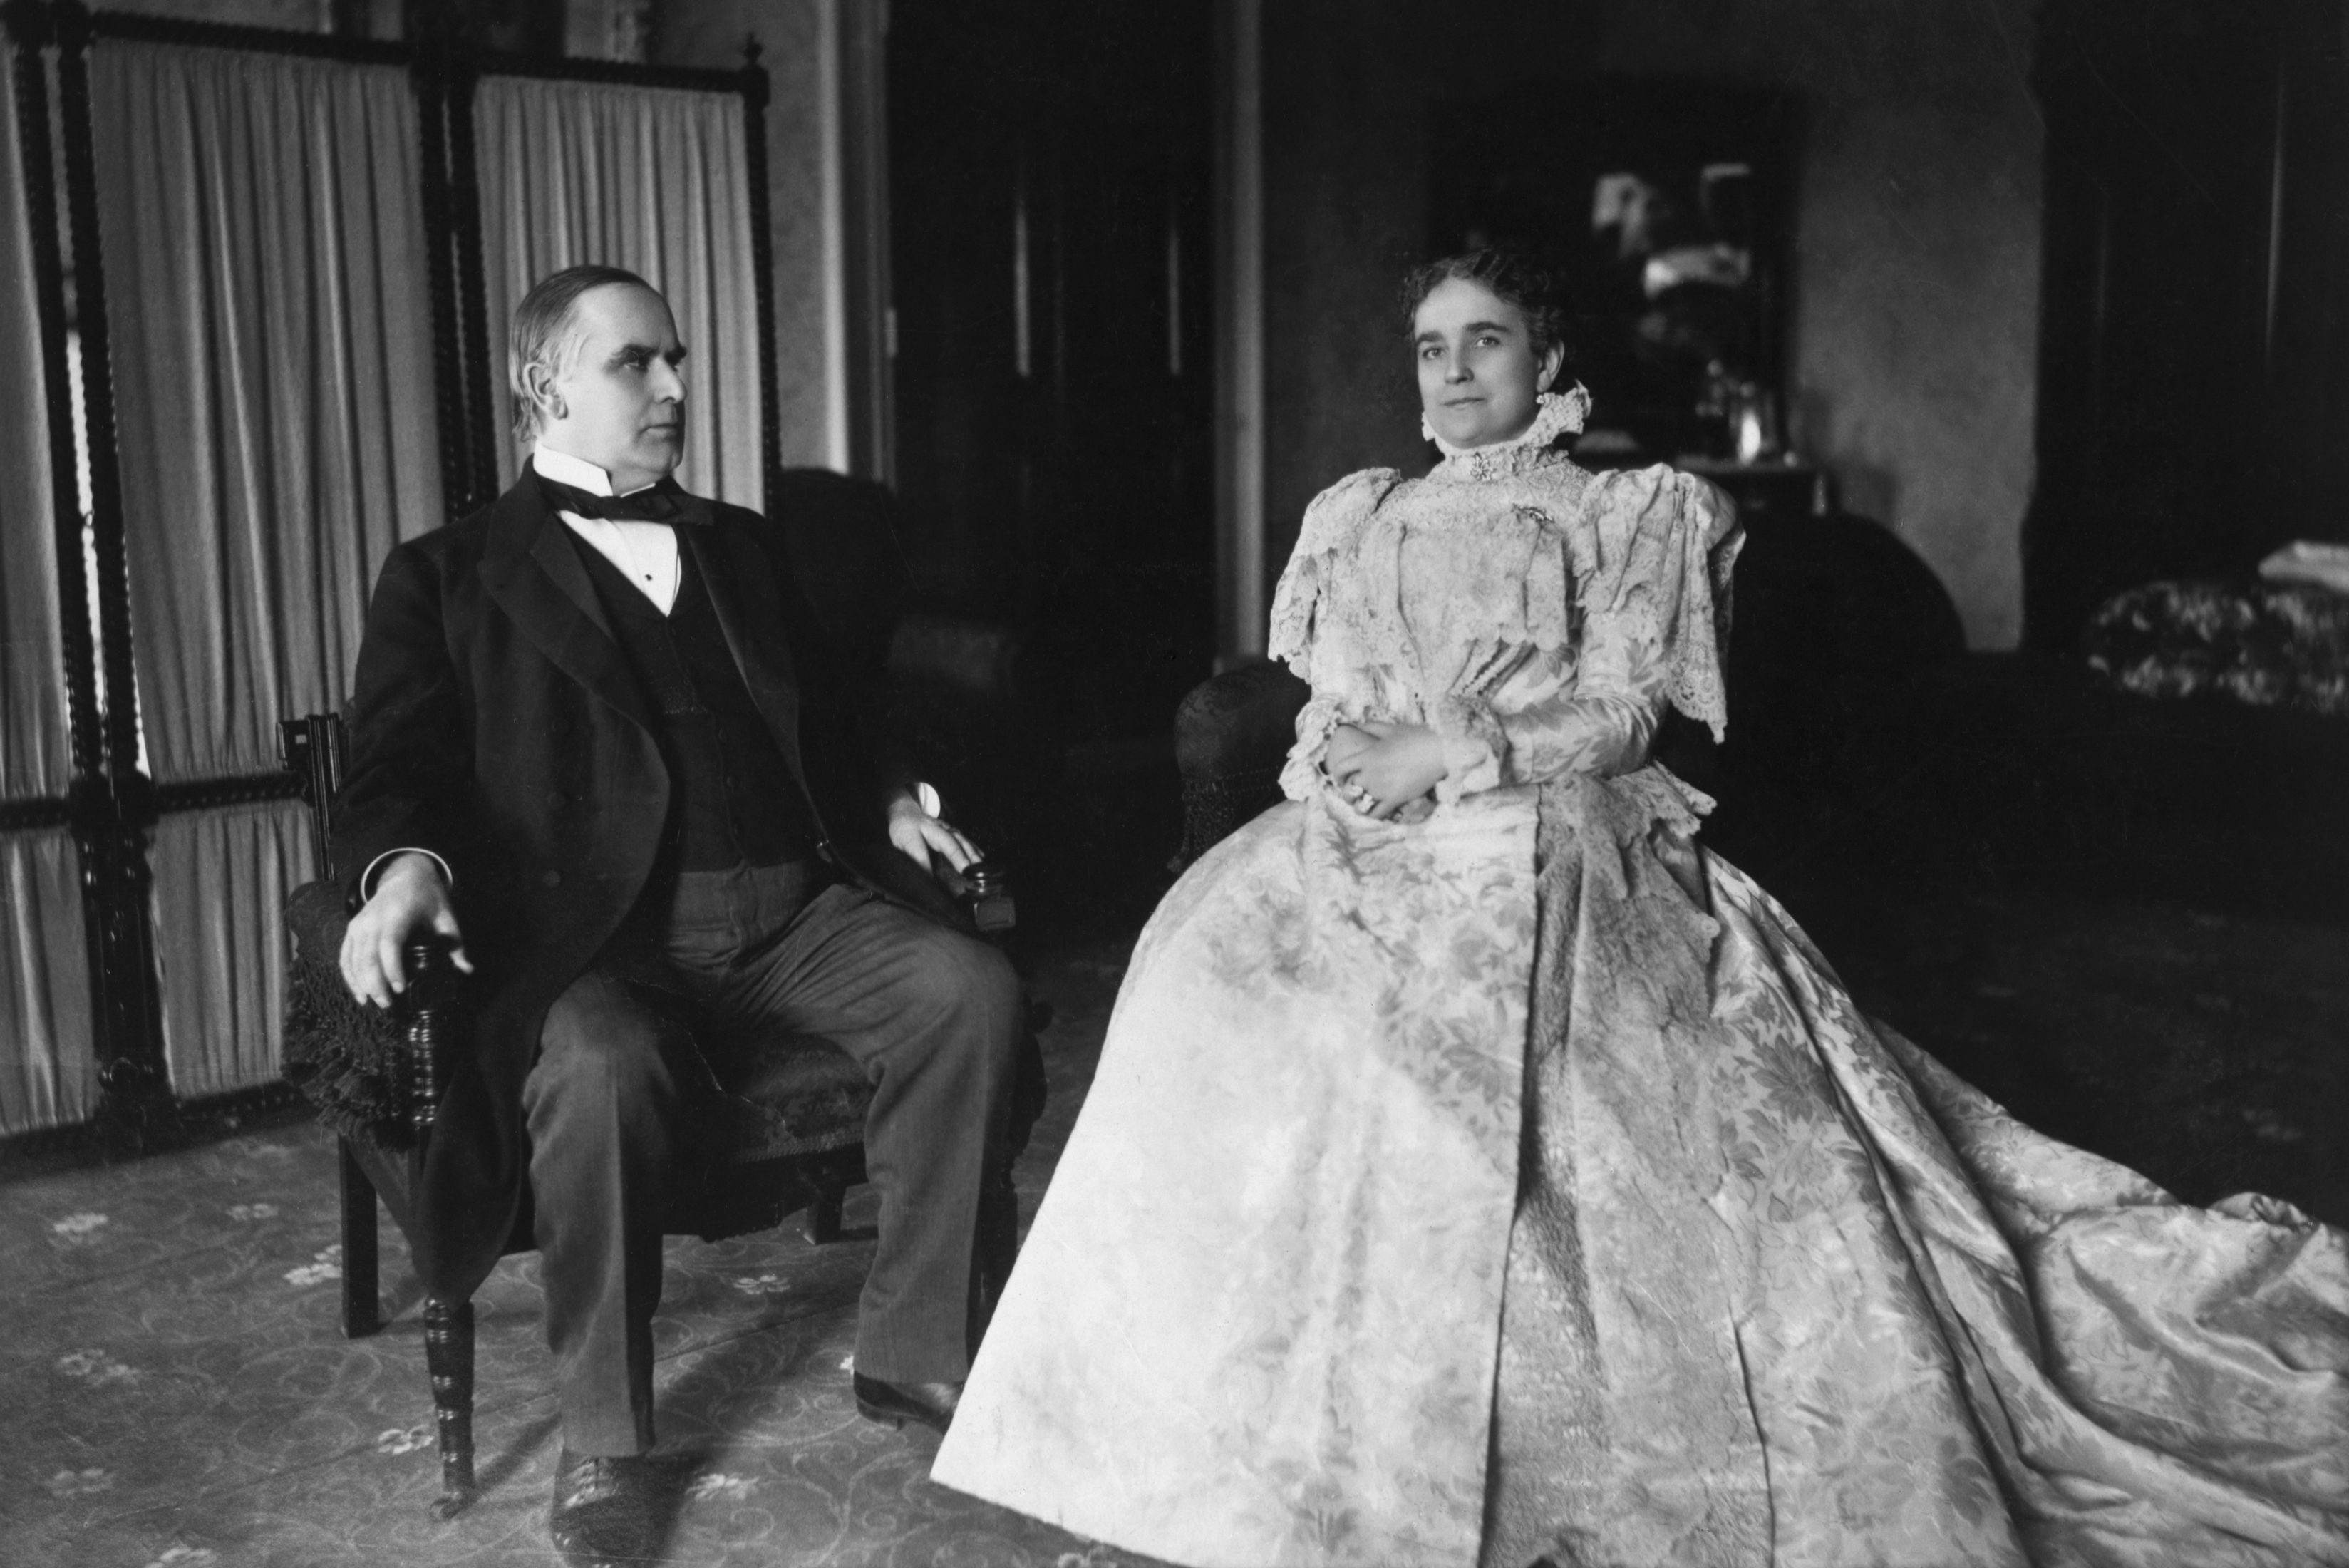 William Mckinley and wife Ida Saxon Mckinley